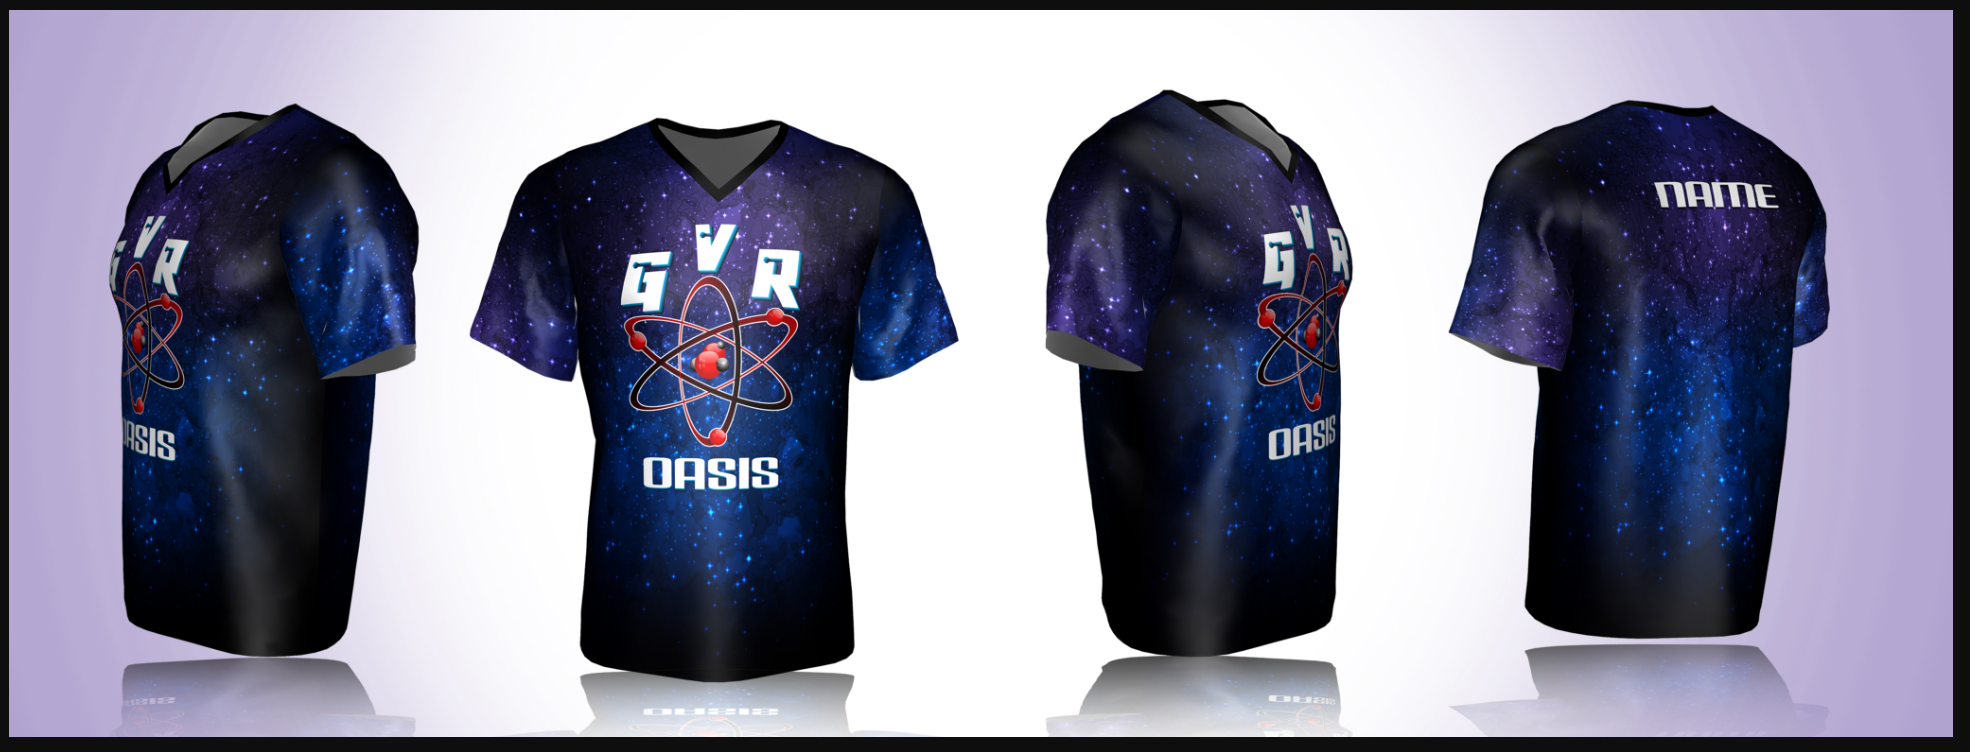 Custom Sublimation Tshirt